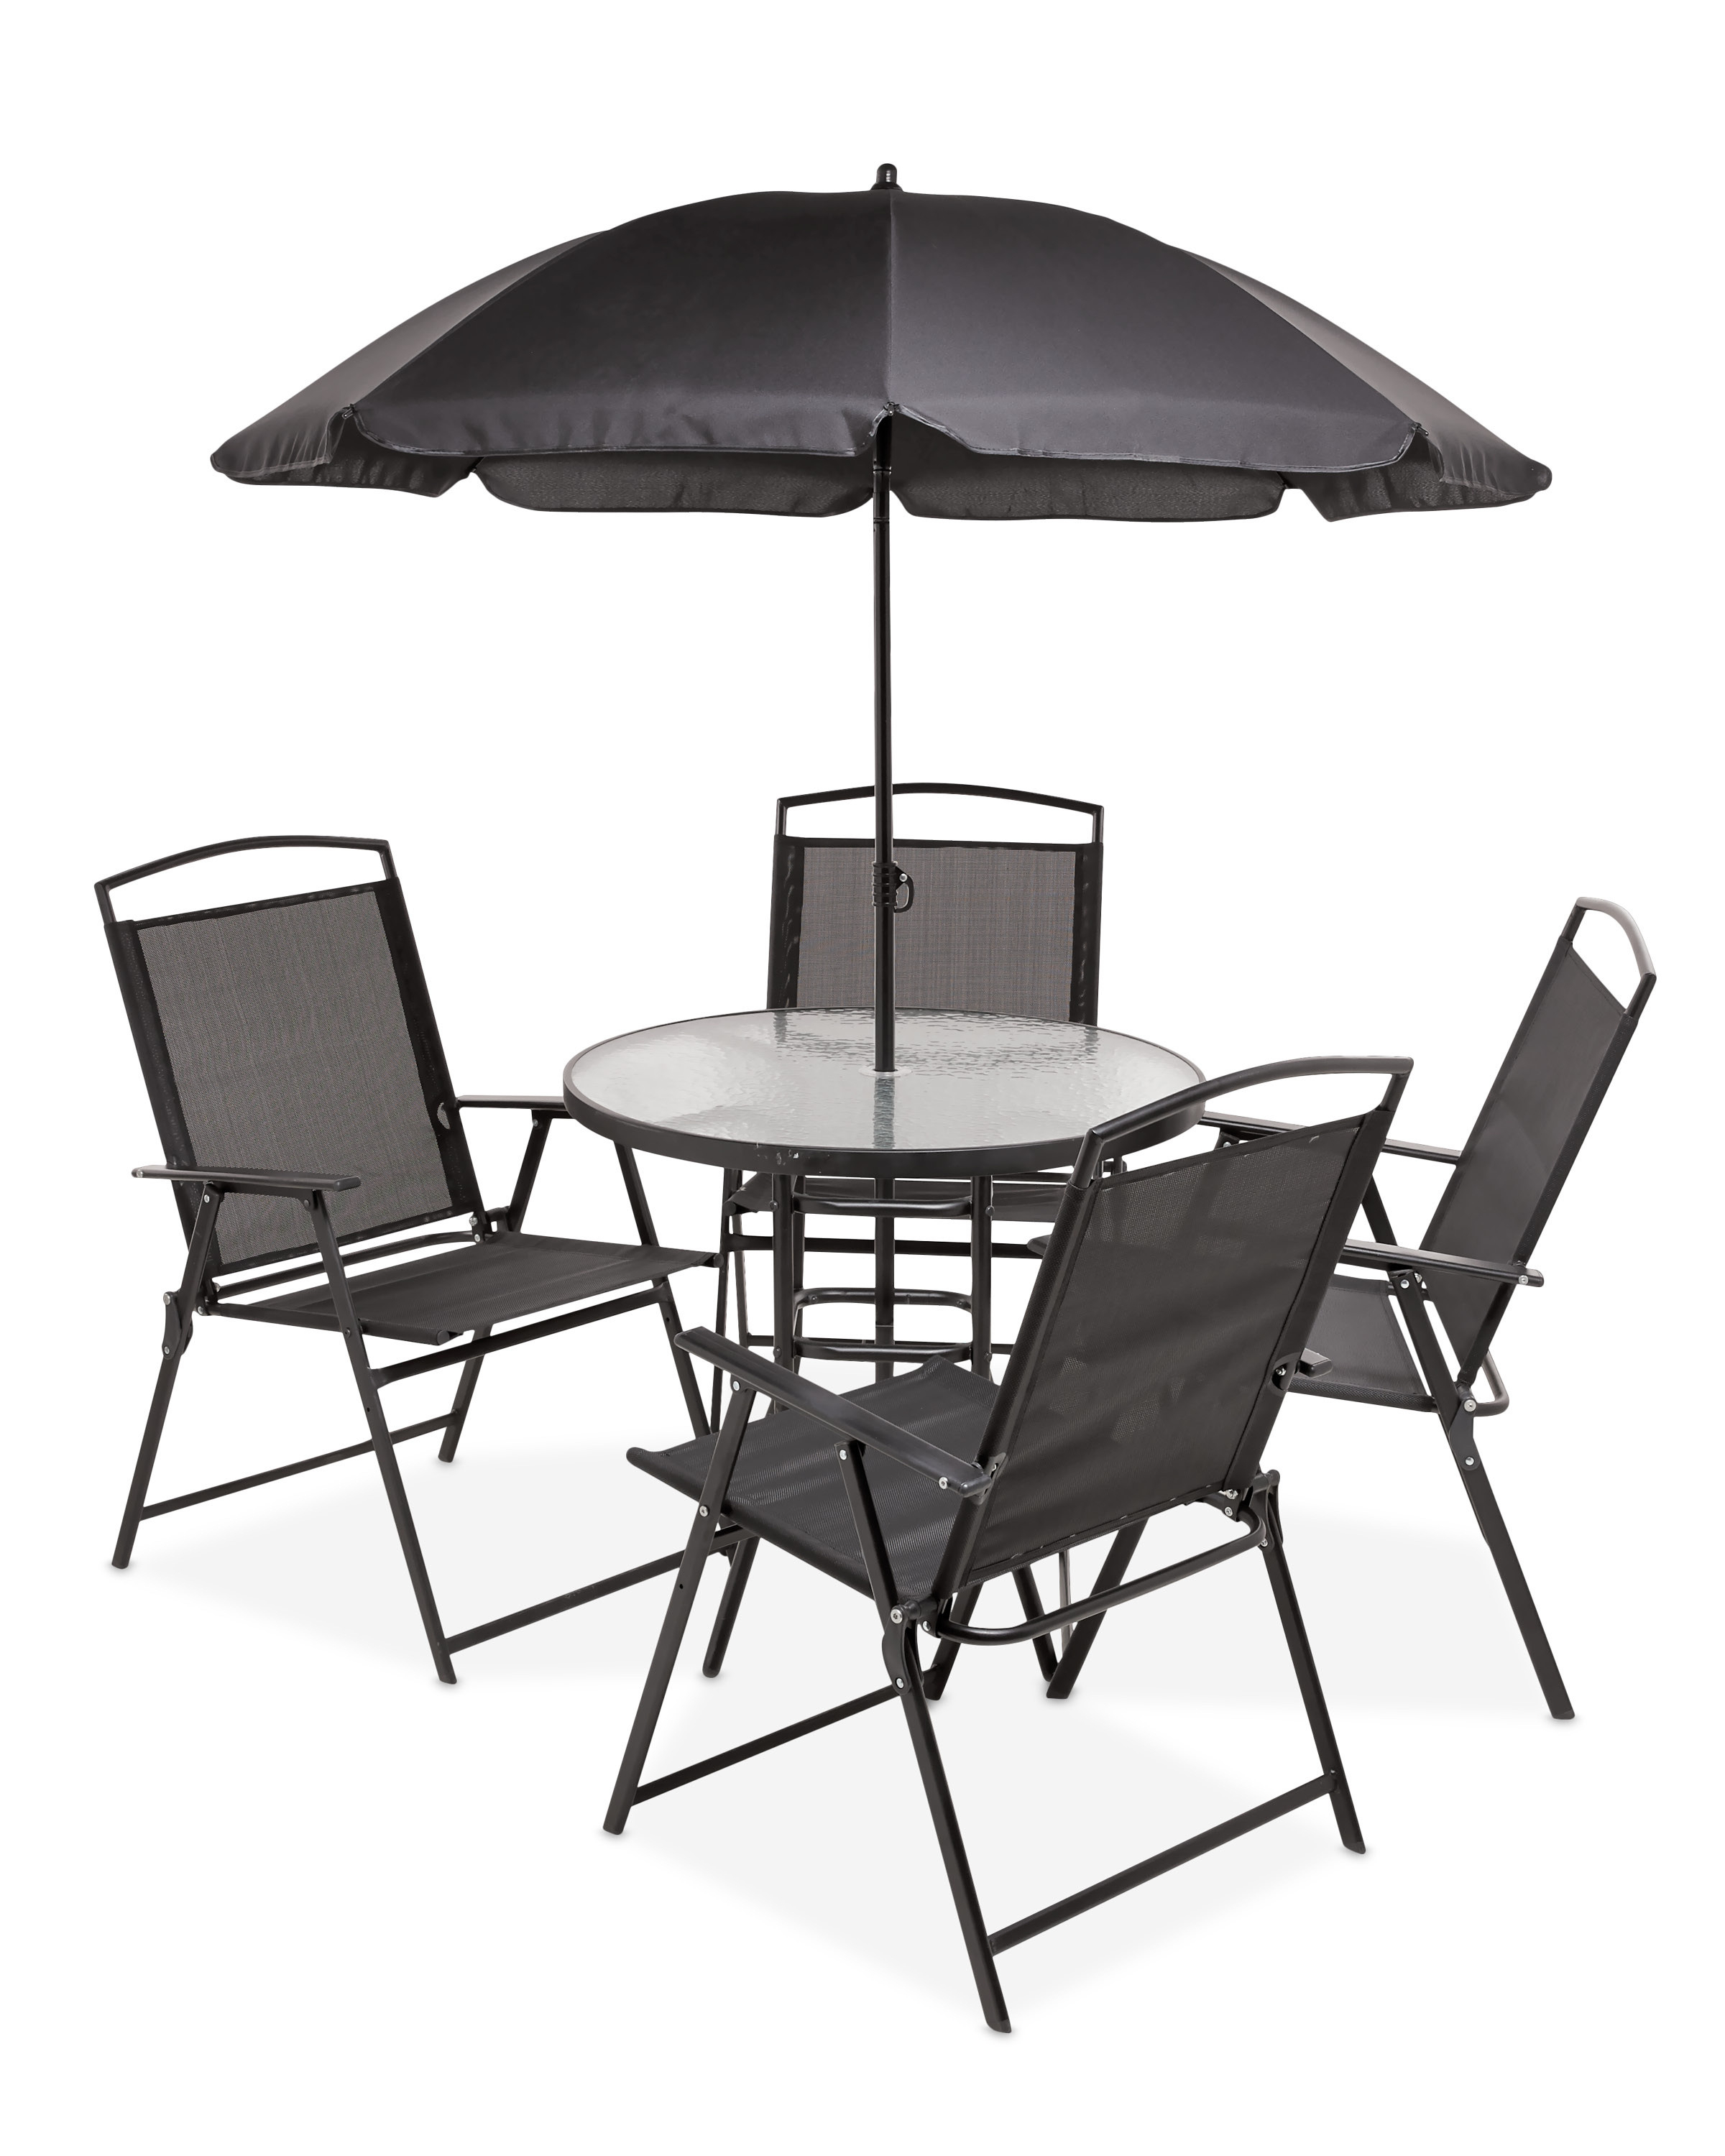 Stupendous Aldi 6 Piece Patio Set Patio Ideas Gmtry Best Dining Table And Chair Ideas Images Gmtryco